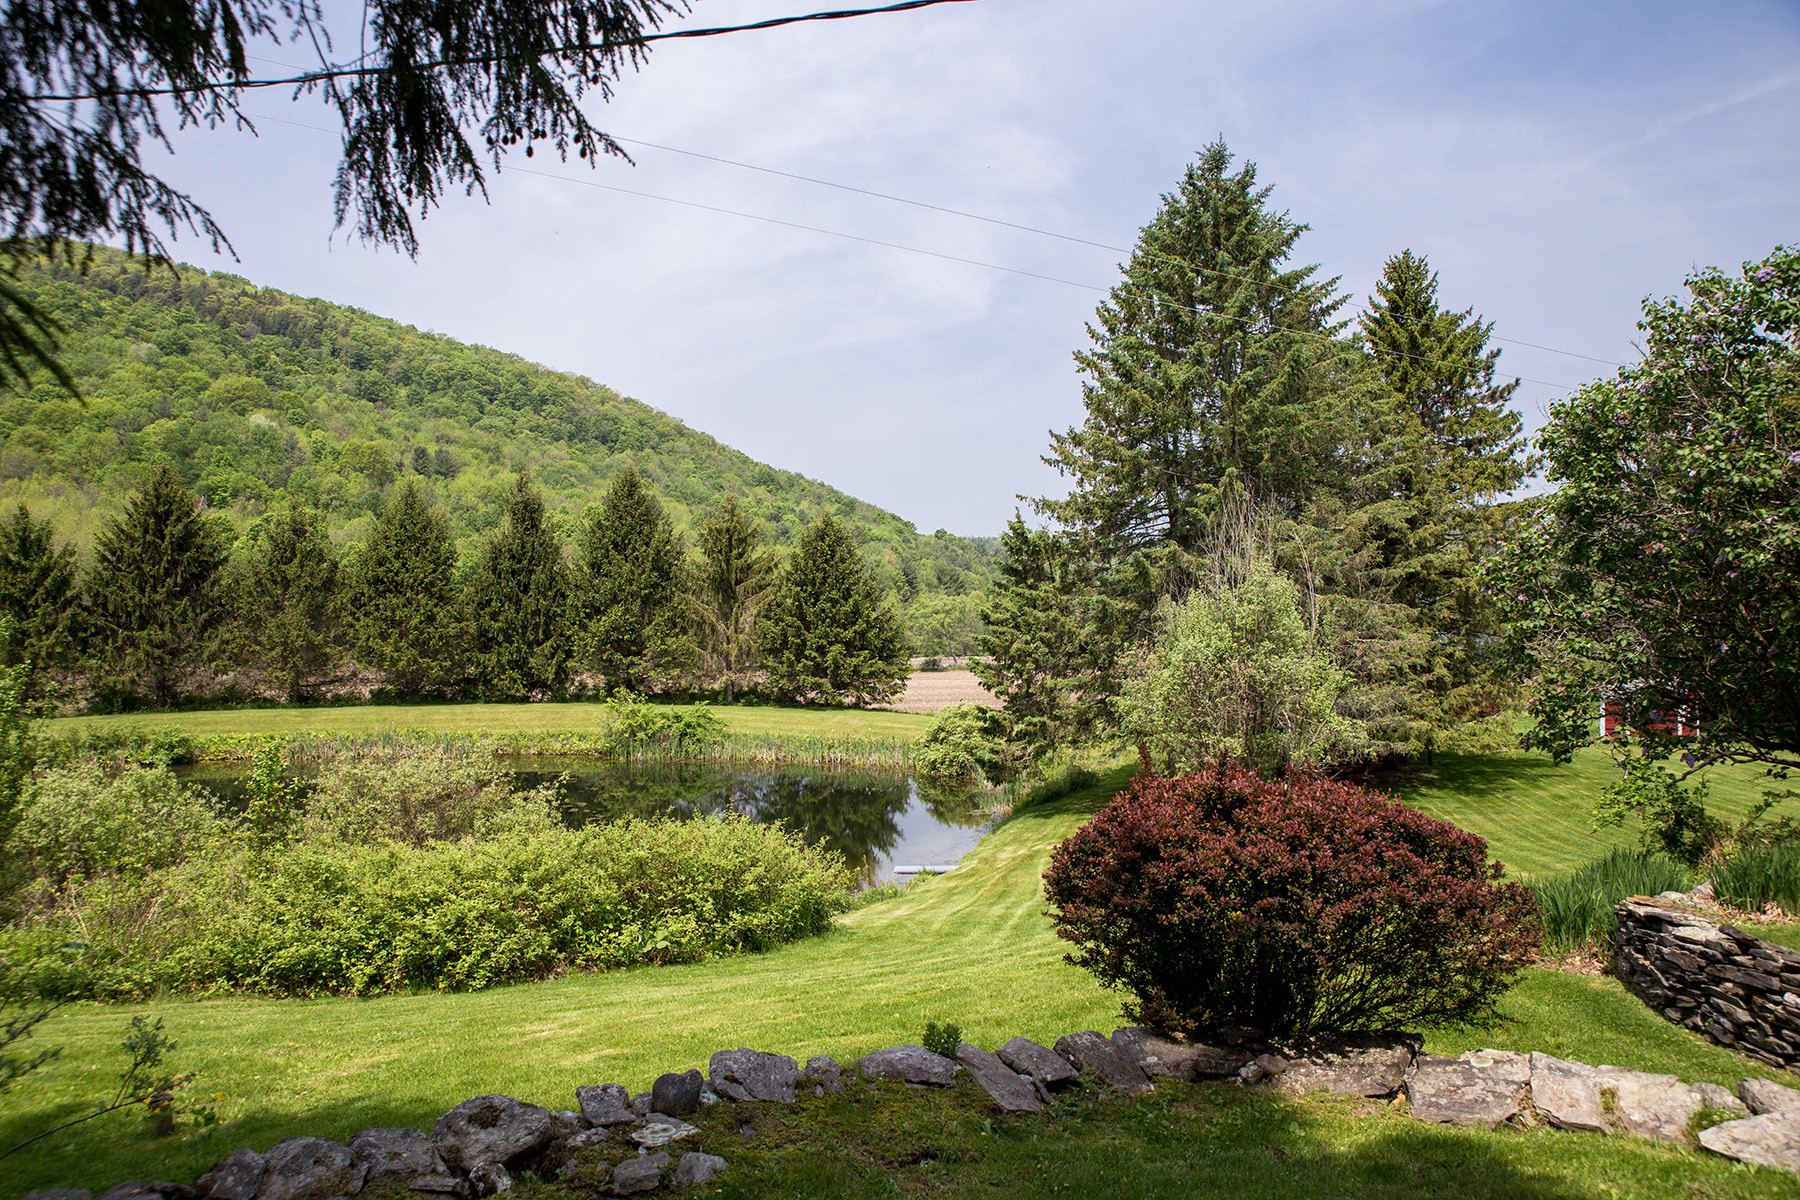 Additional photo for property listing at Butternut Farm 359  Mckie Hollow Rd Cambridge, Nueva York 12816 Estados Unidos